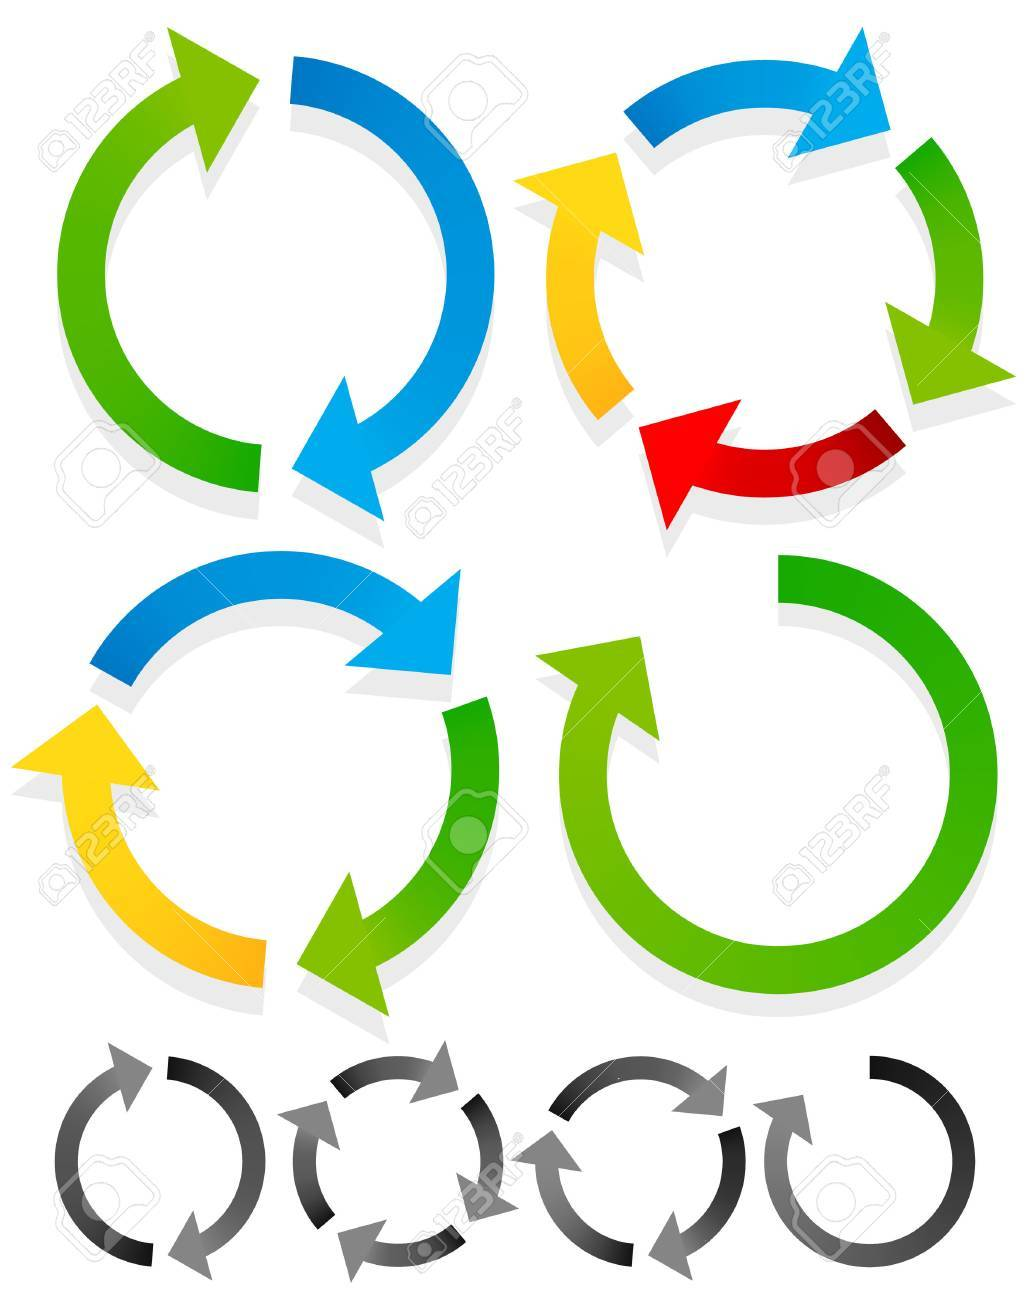 Circular arrows for recycle, repetition, rotation or cycle, synchronization, forward, backward concepts. Arrows in circle vector graphics. - 43529683